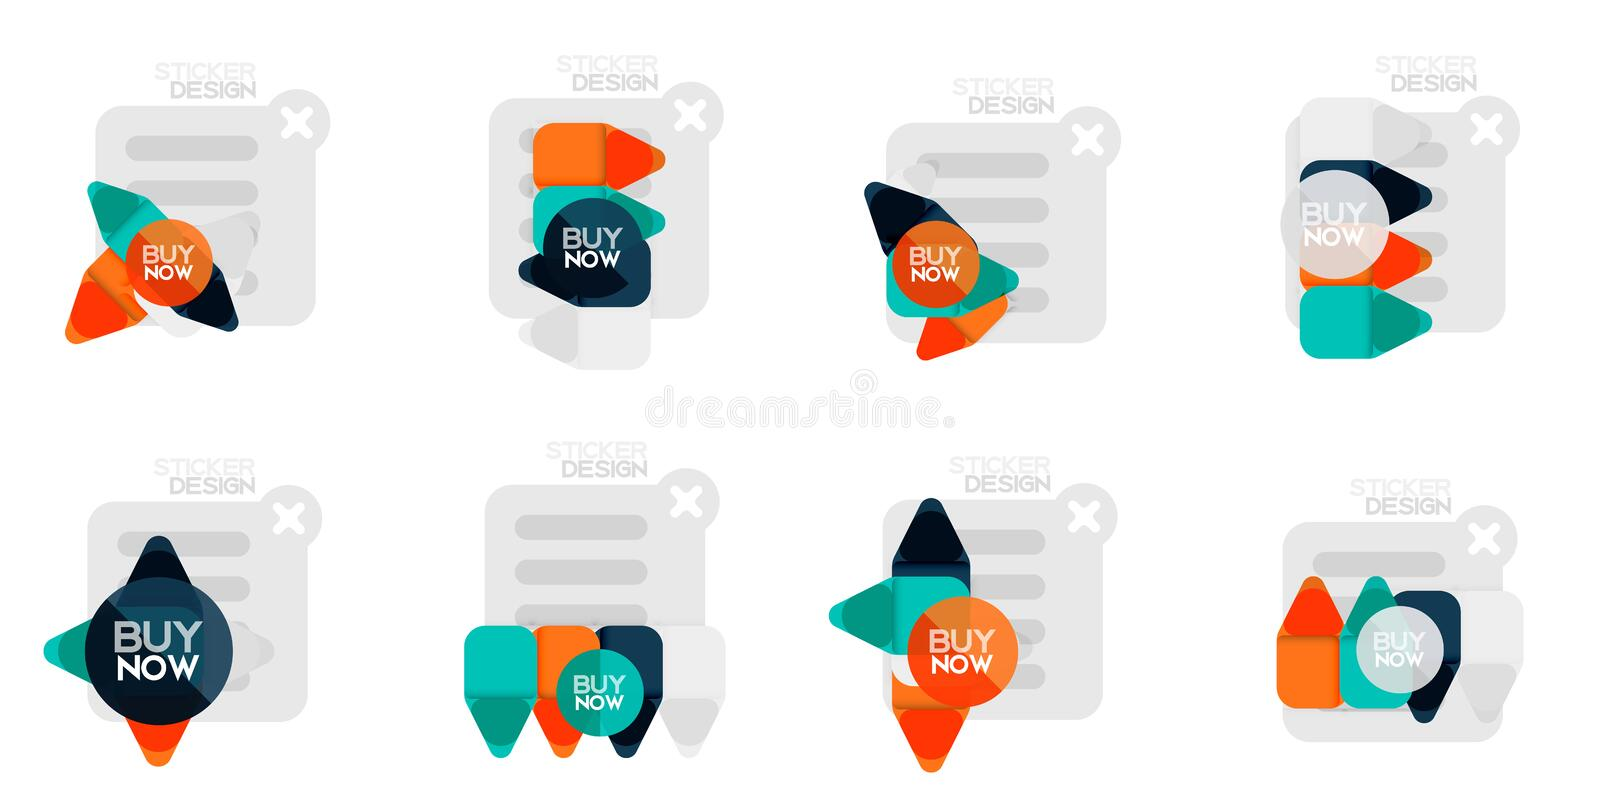 Set of flat design geometric stickers and labels, price tags, offer promotion badges, icon designs, paper style with buy stock illustration